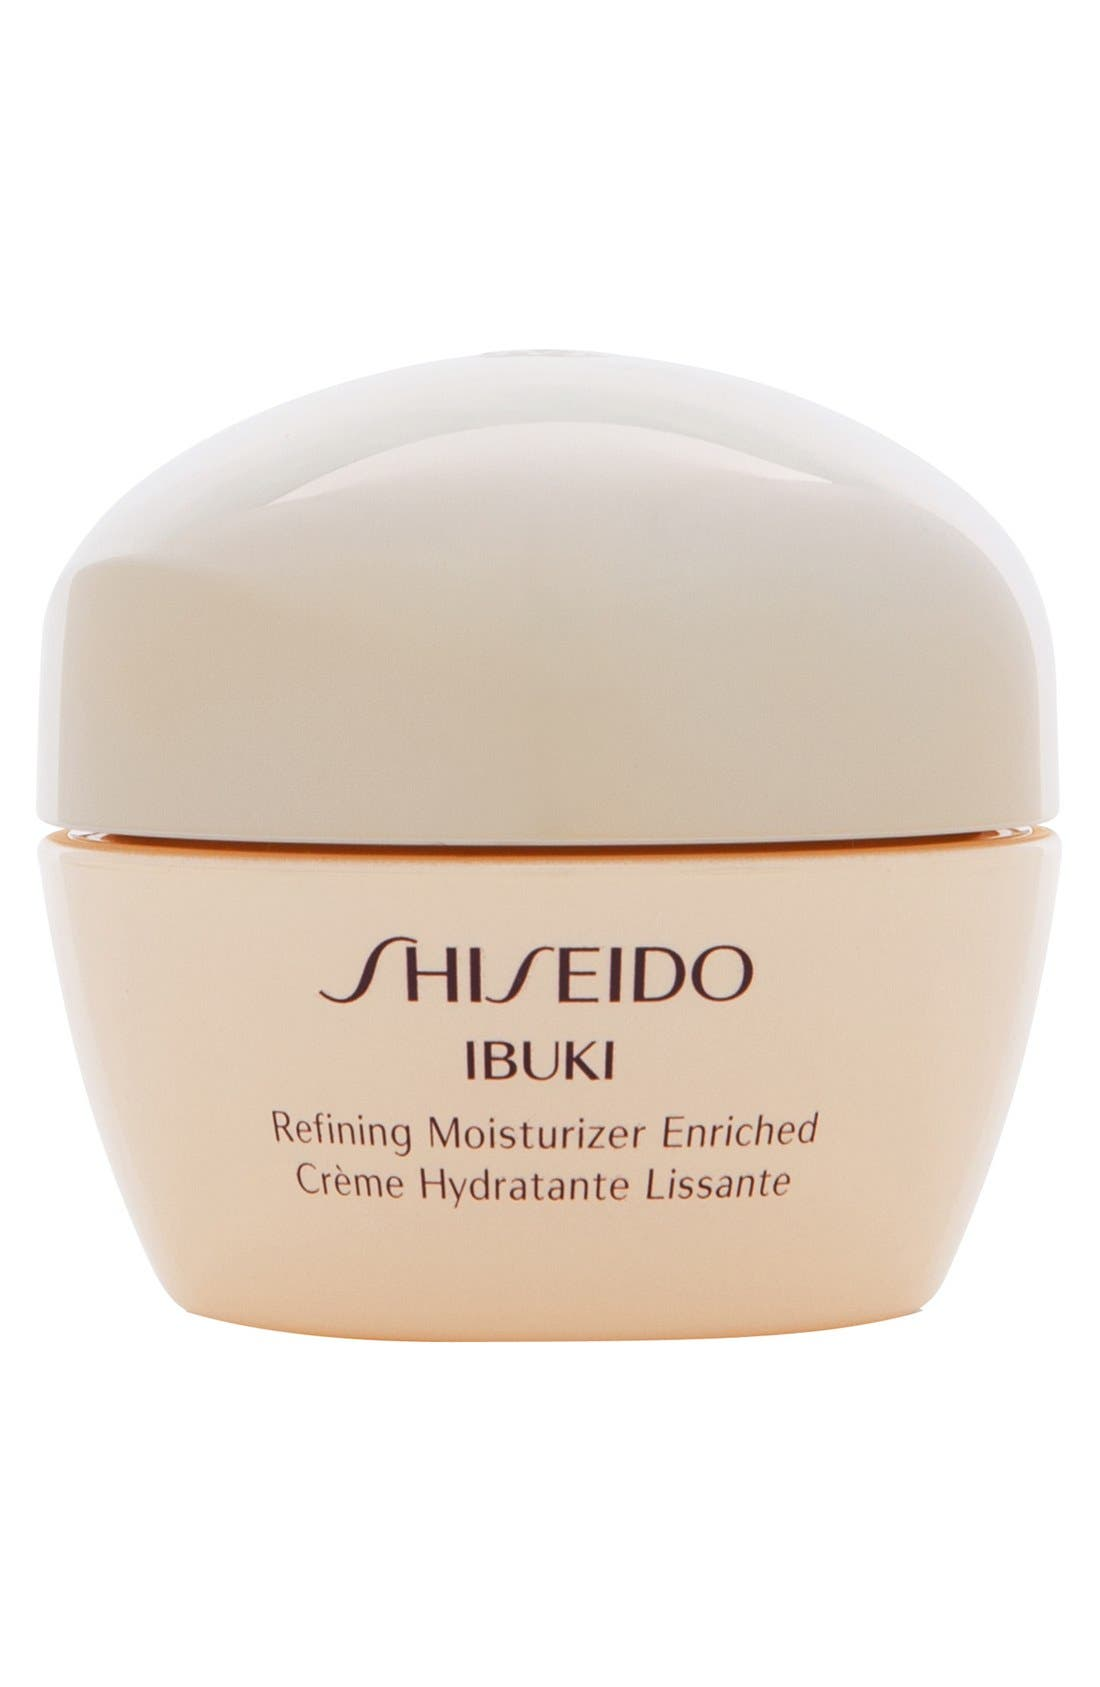 SHISEIDO,                             Ibuki Refining Moisturizer Enriched,                             Main thumbnail 1, color,                             NO COLOR